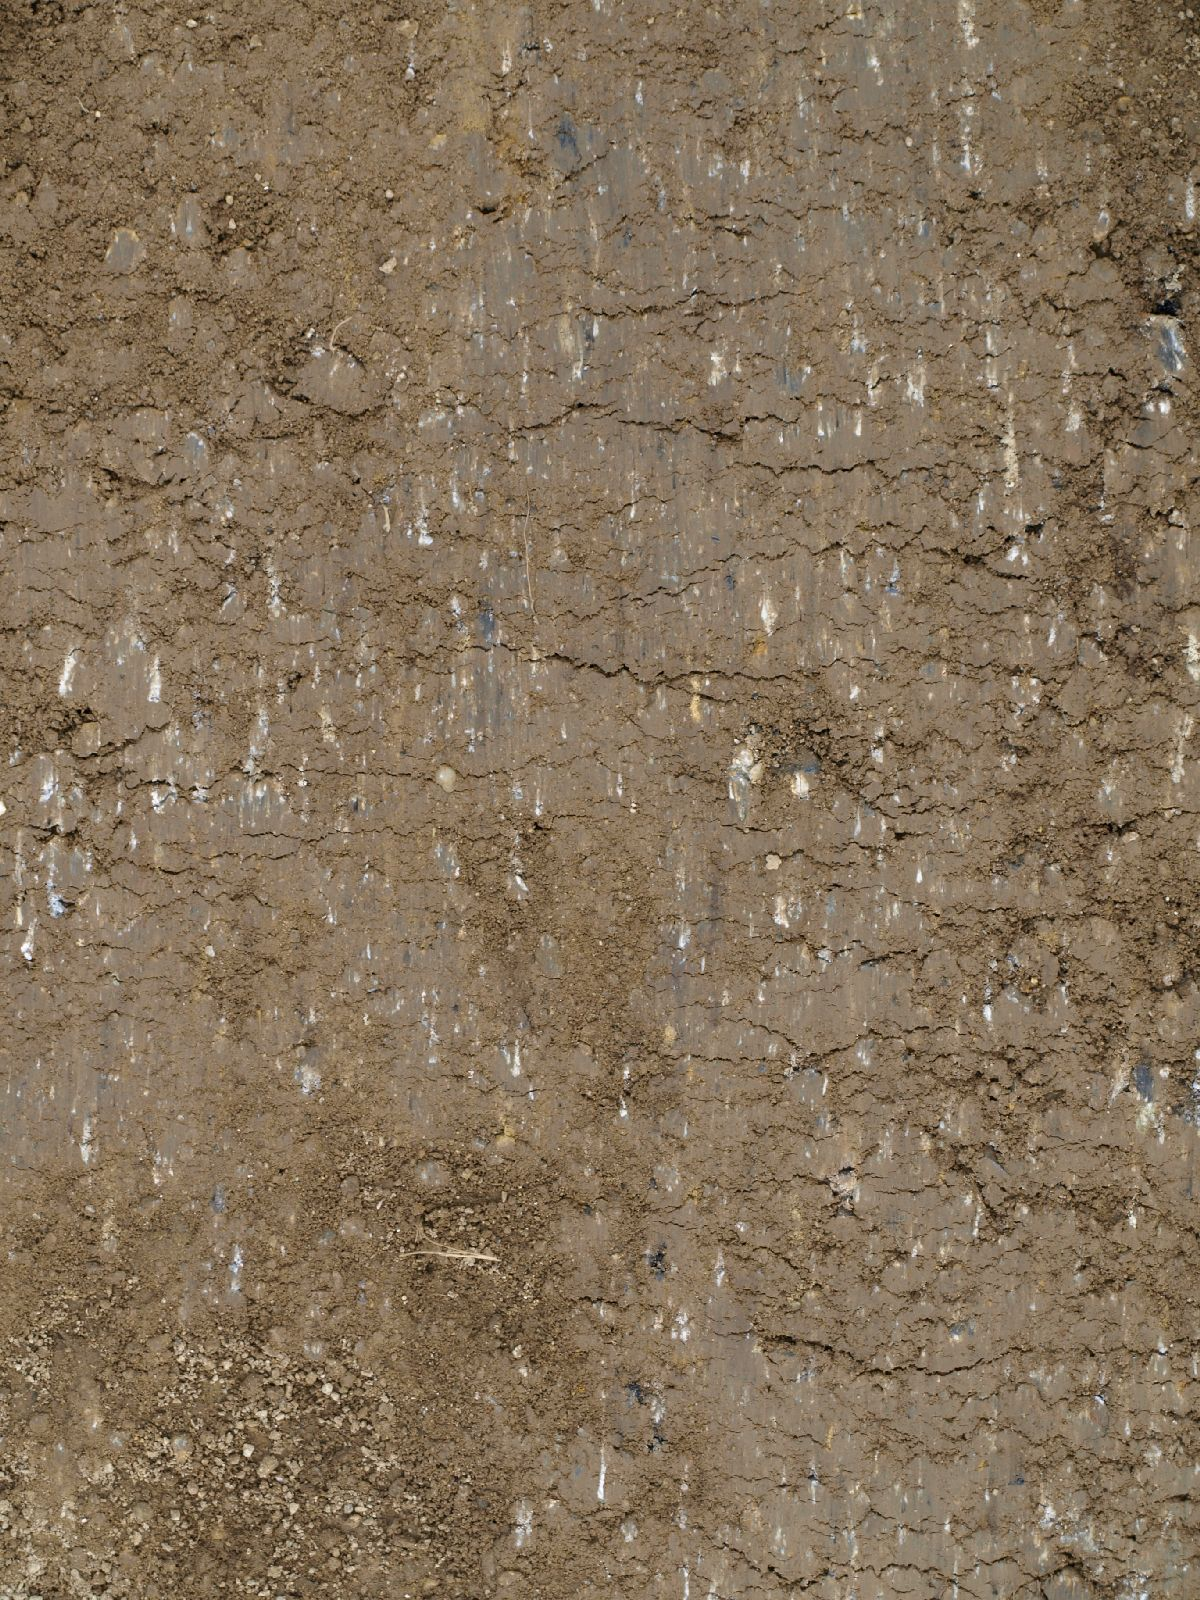 Ground-Nature_Texture_A_P9195032